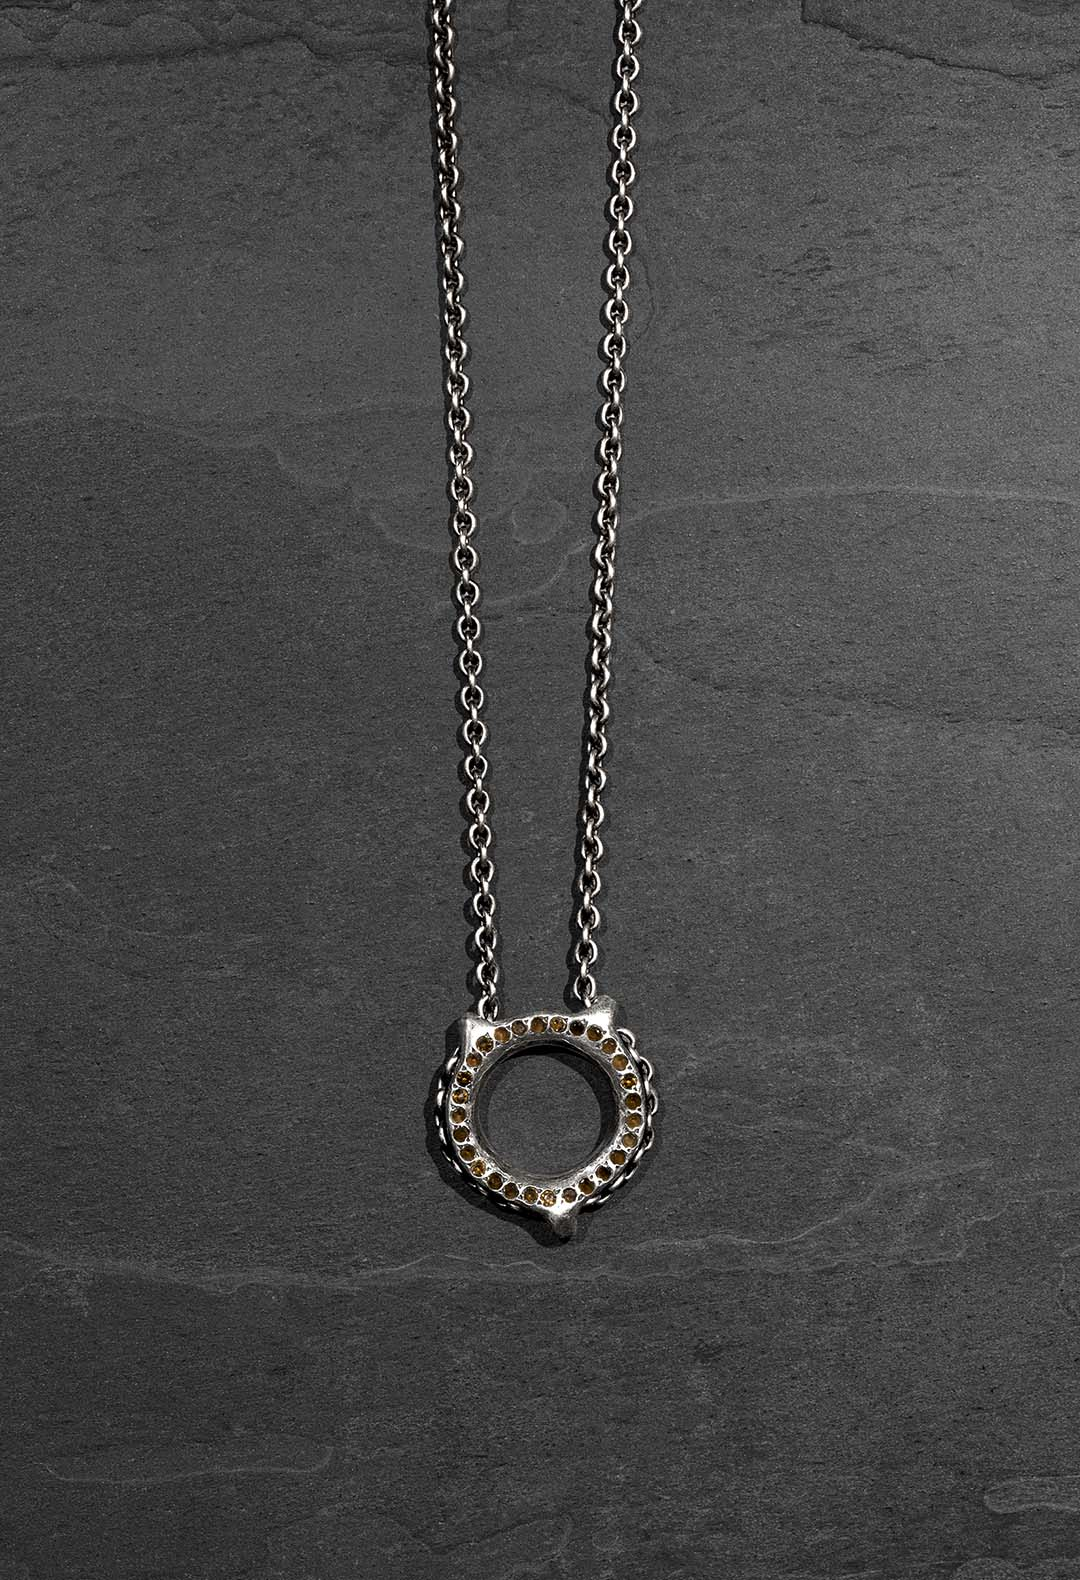 Chain loop stones necklace